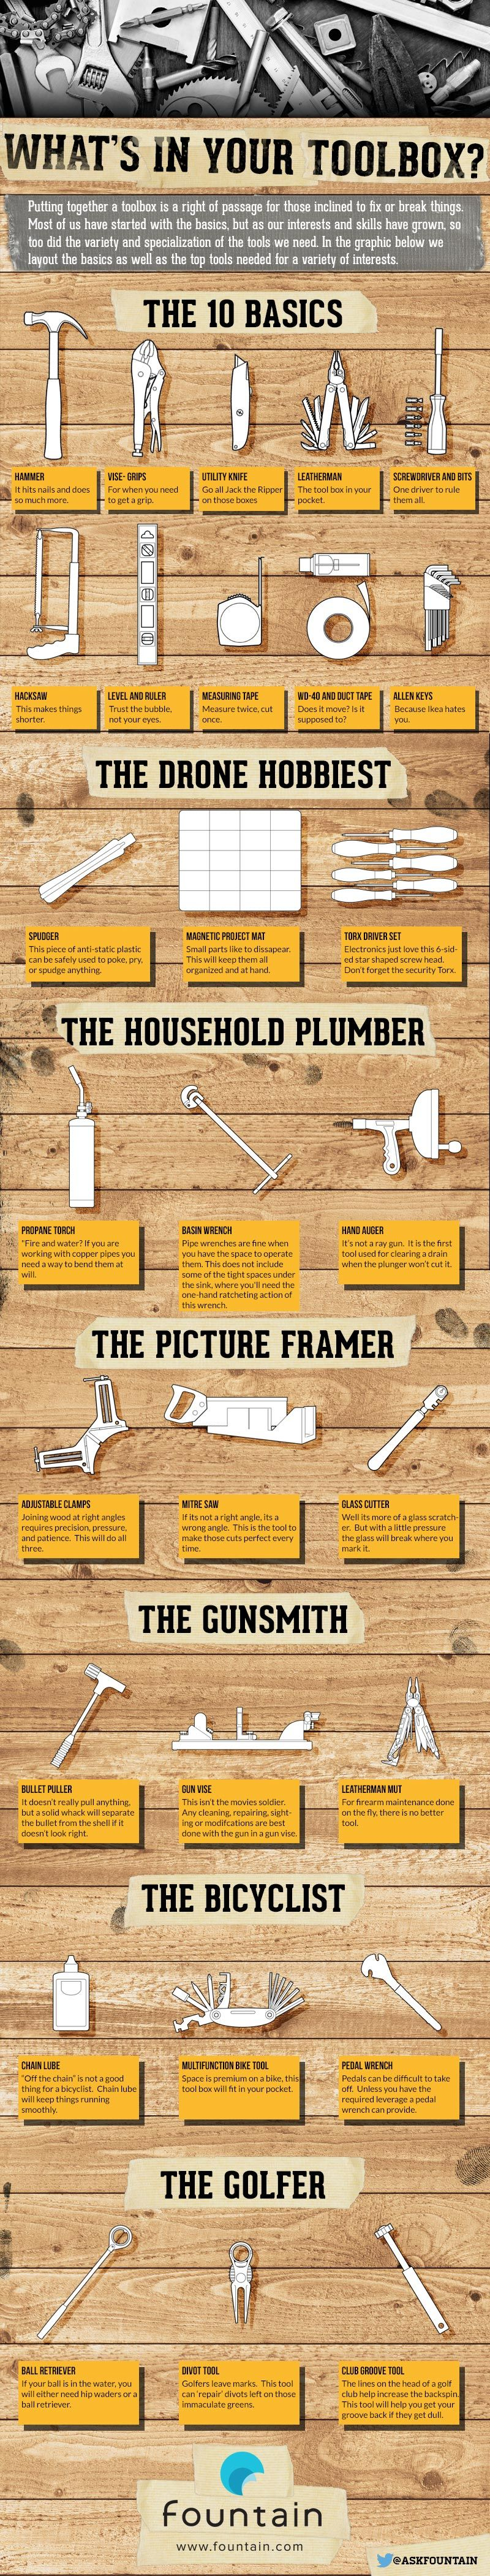 What S In Your Toolbox Infographic With Images Tool Box